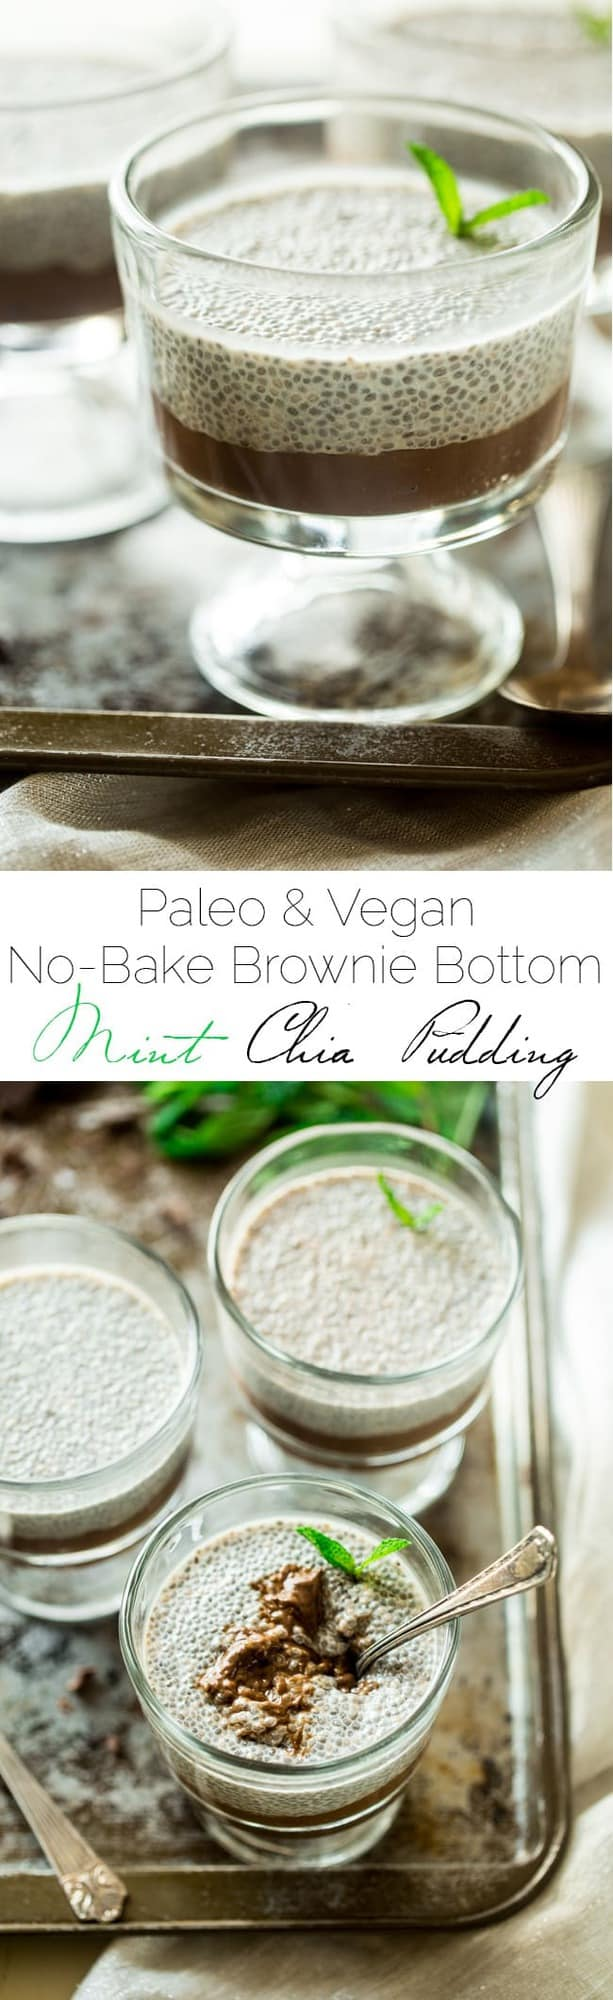 6 Ingredient Paleo and Vegan Brownie Bottom Mint Chia Pudding - This chia pudding recipe has a no-bake, gluten free brownie bottom and is only 6 ingredients and ready in 5 minutes. The perfect, healthy, make-ahead breakfast for Christmas morning! | Foodfaithfitness.com | @FoodFaithFit